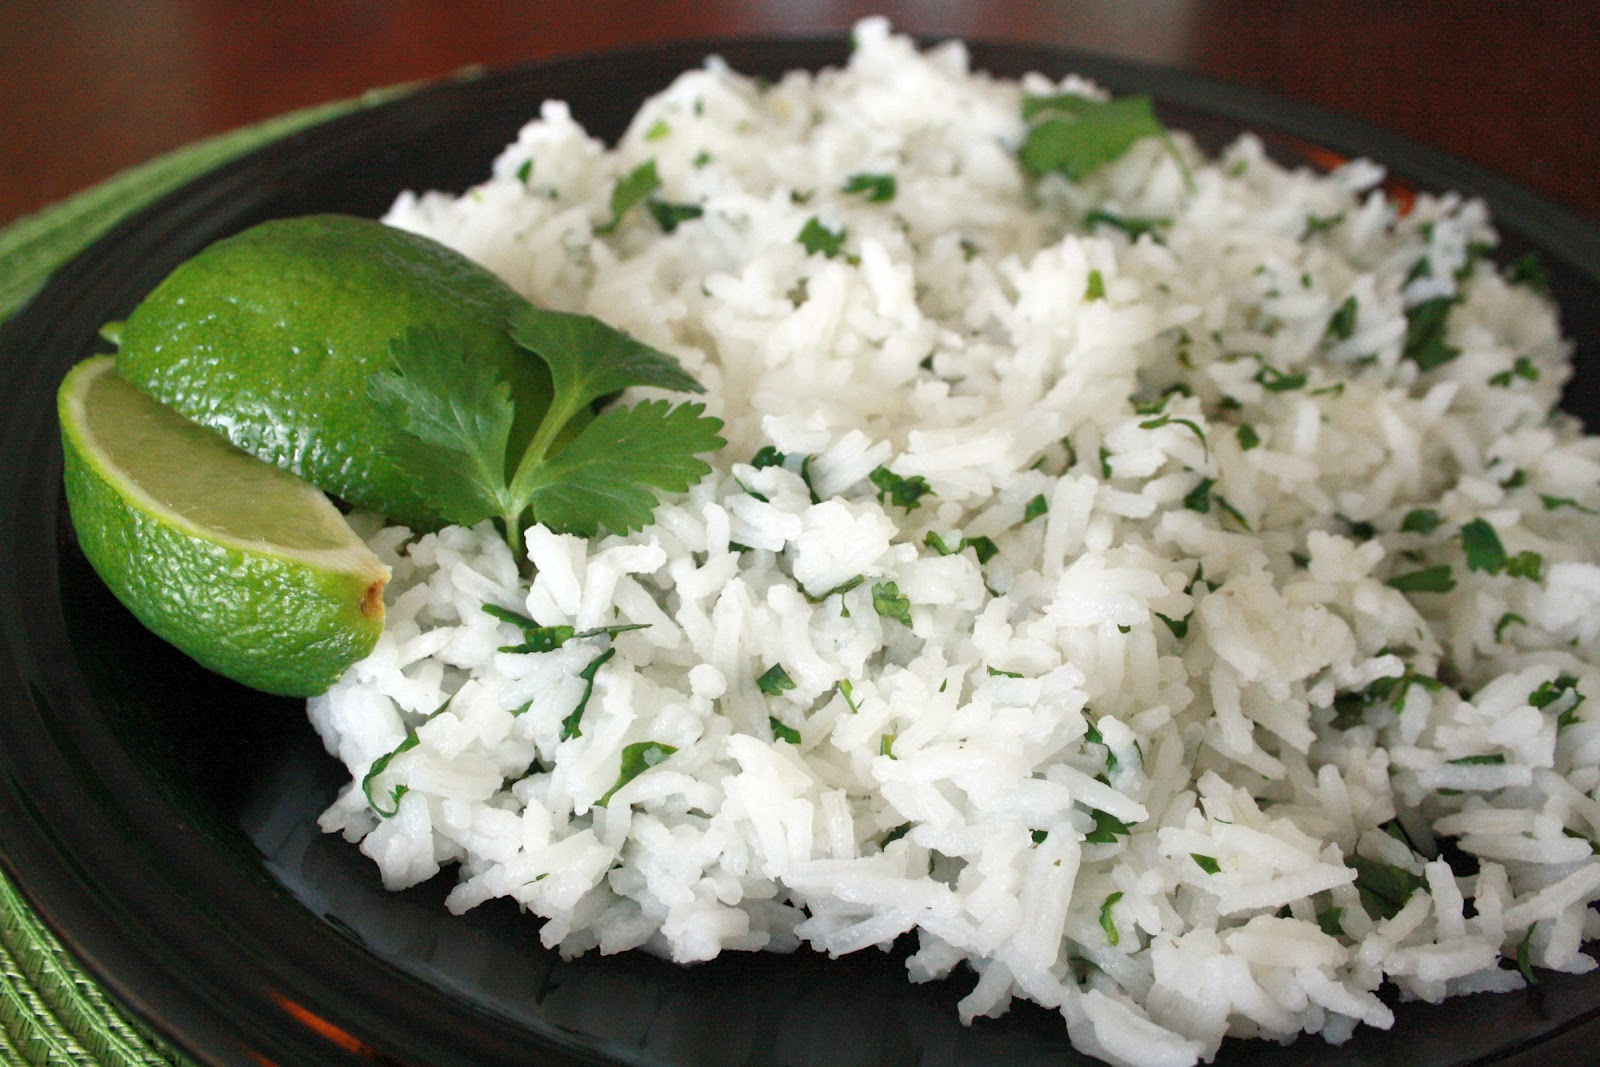 The Learning Curve: Cilantro-Lime Rice